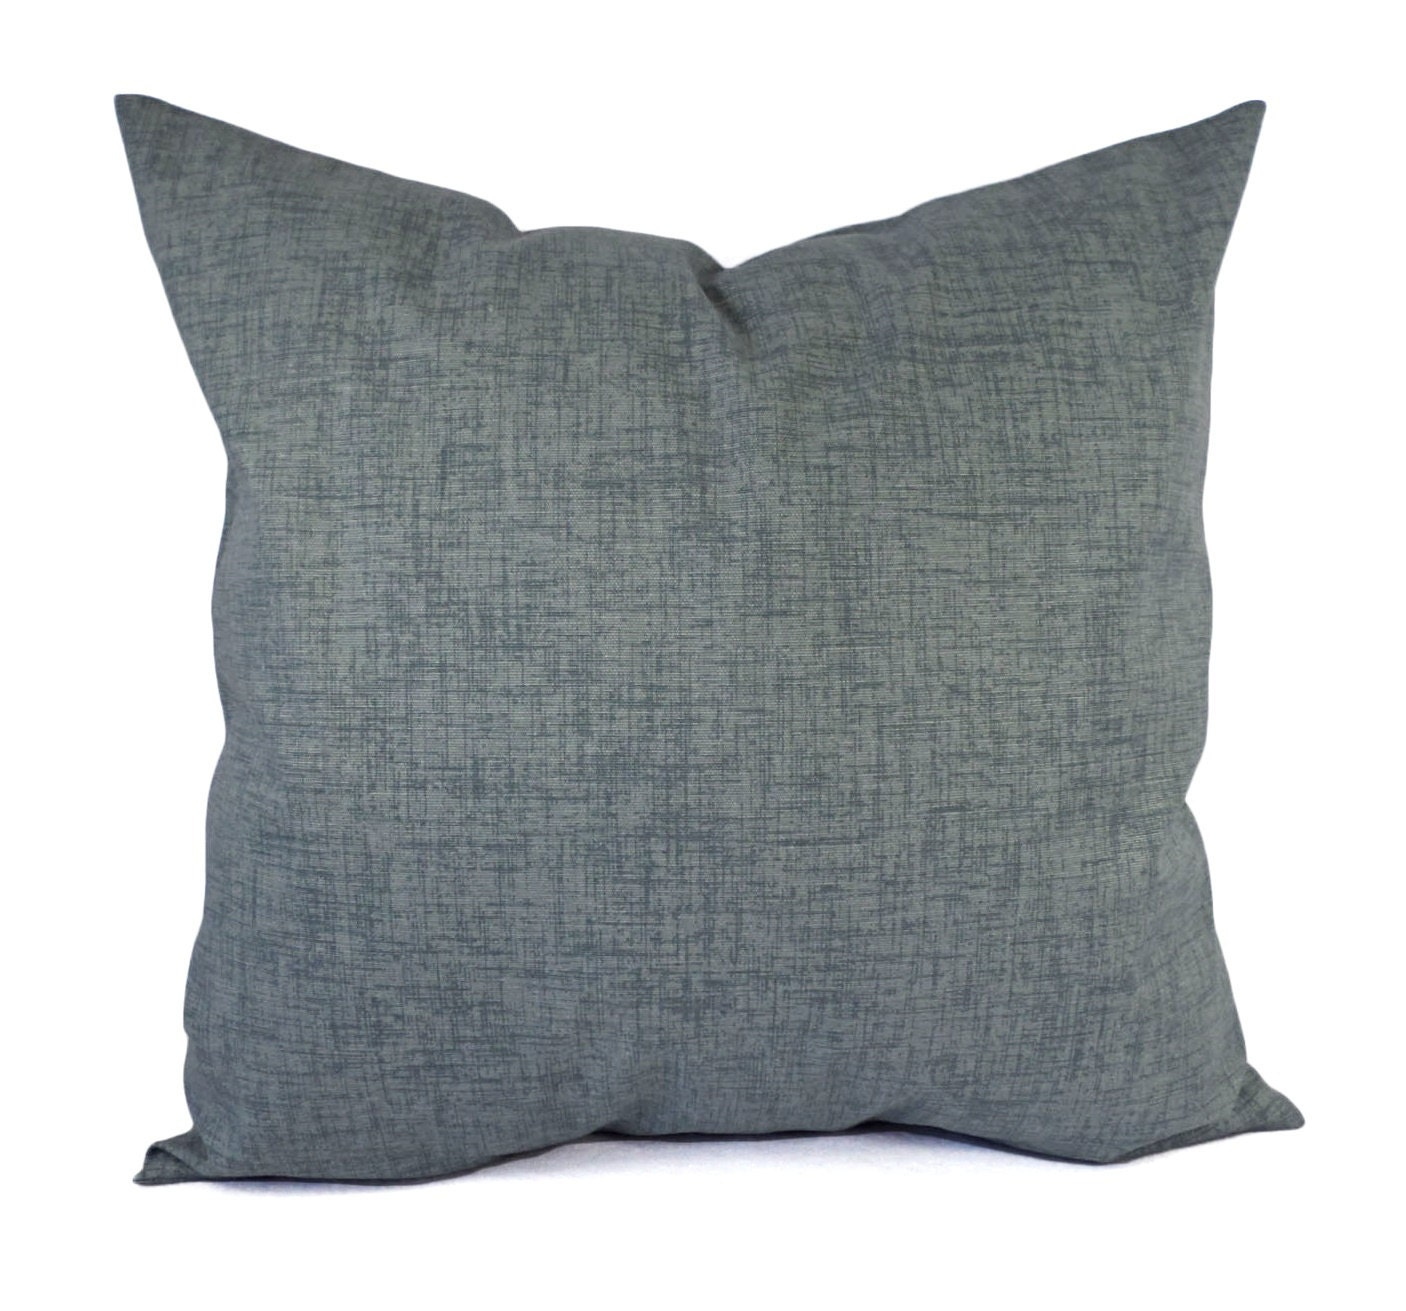 Find and save ideas about Grey pillow covers on Pinterest. | See more ideas about Couch pillow covers, Decorative pillow covers and Grey pillows.